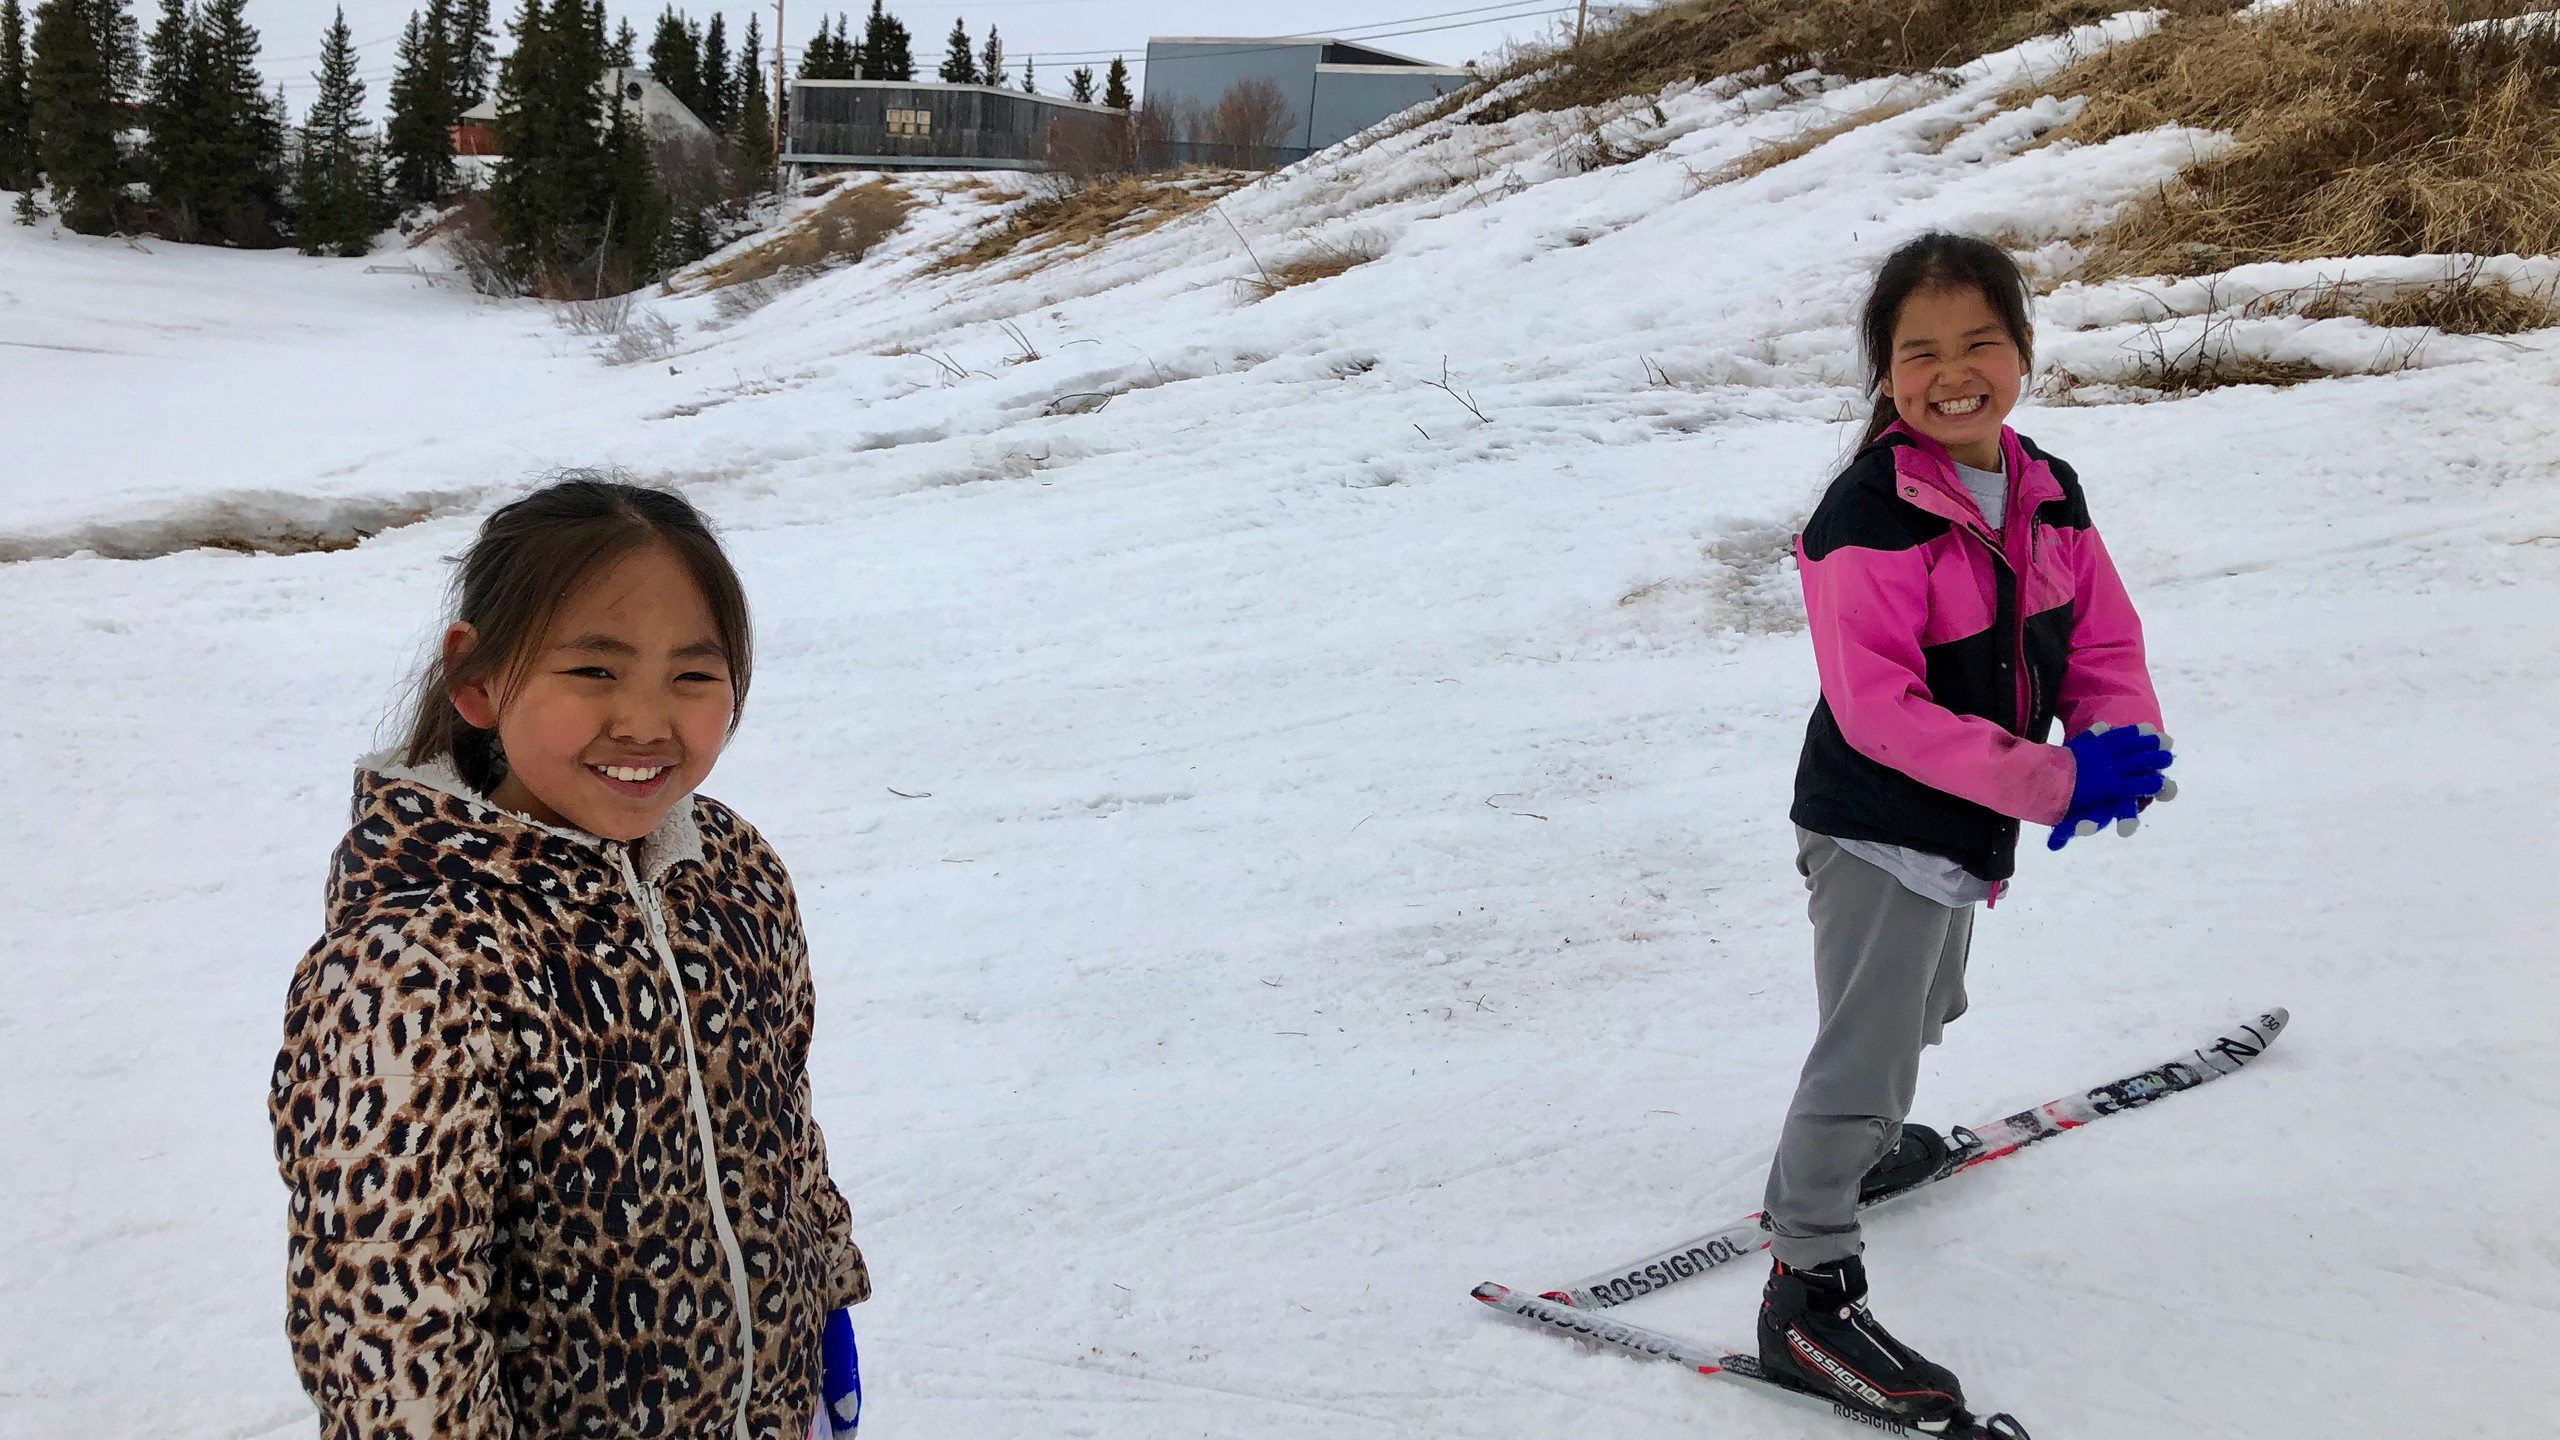 Paula and Dianna skiing after school